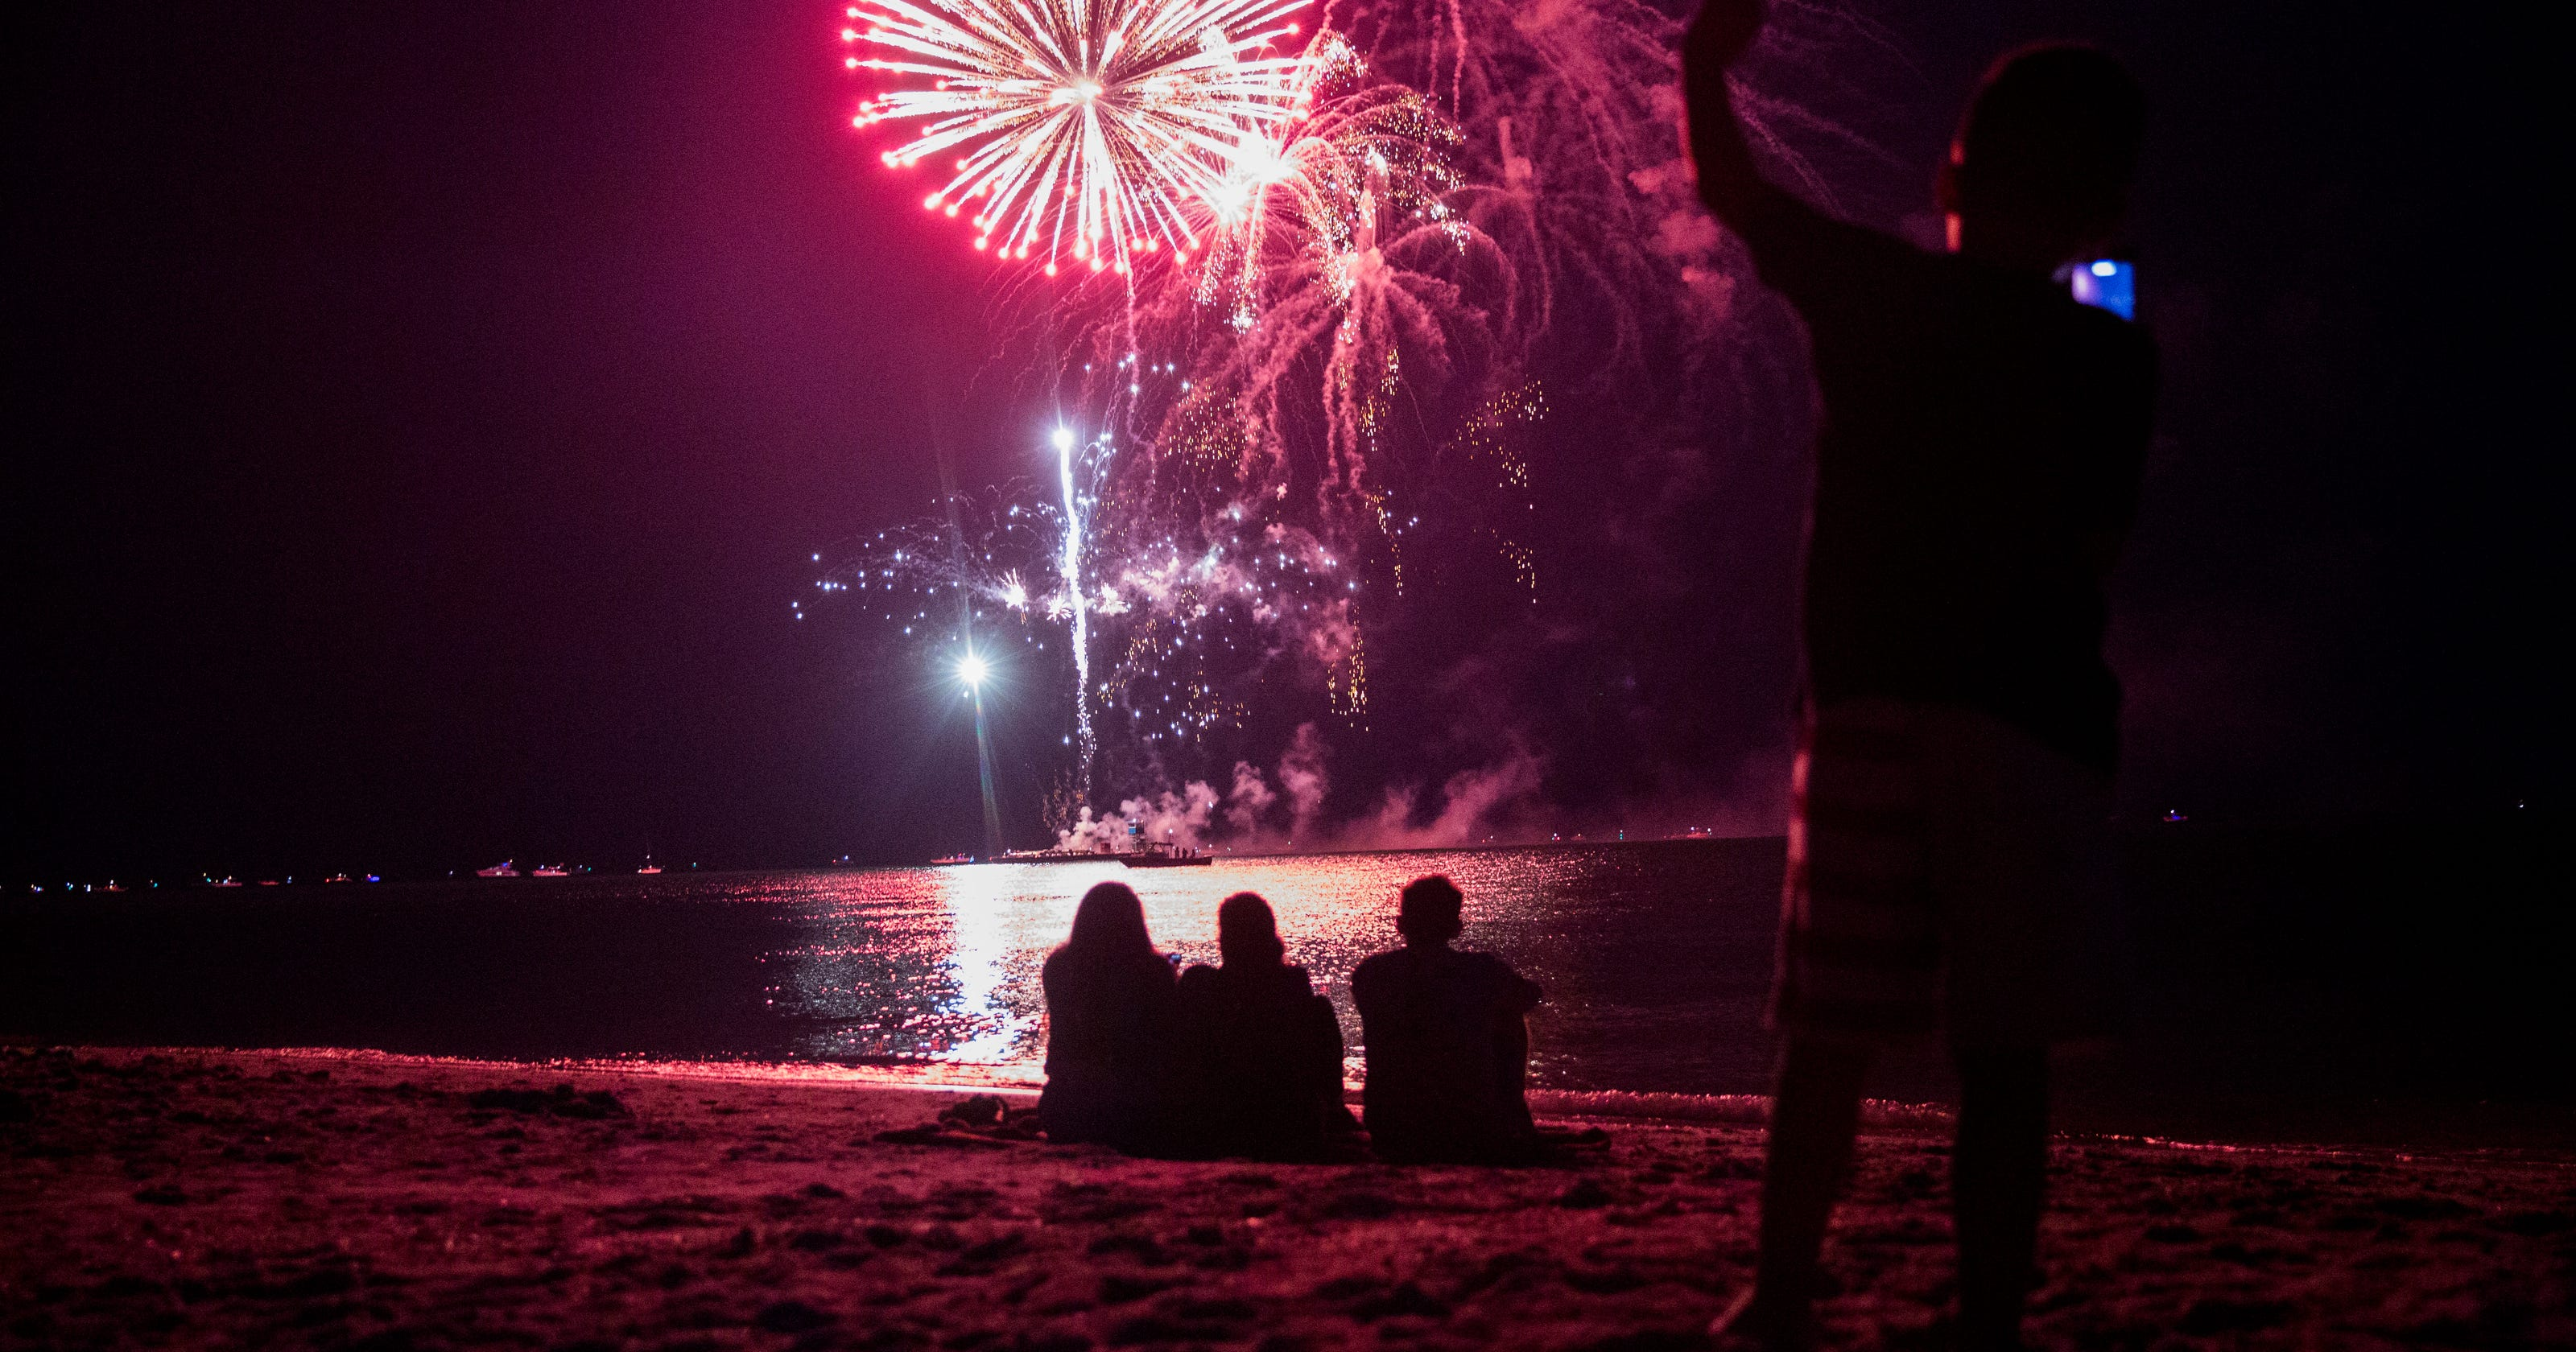 July 4th in Naples: High temperatures, thunderstorms on tap